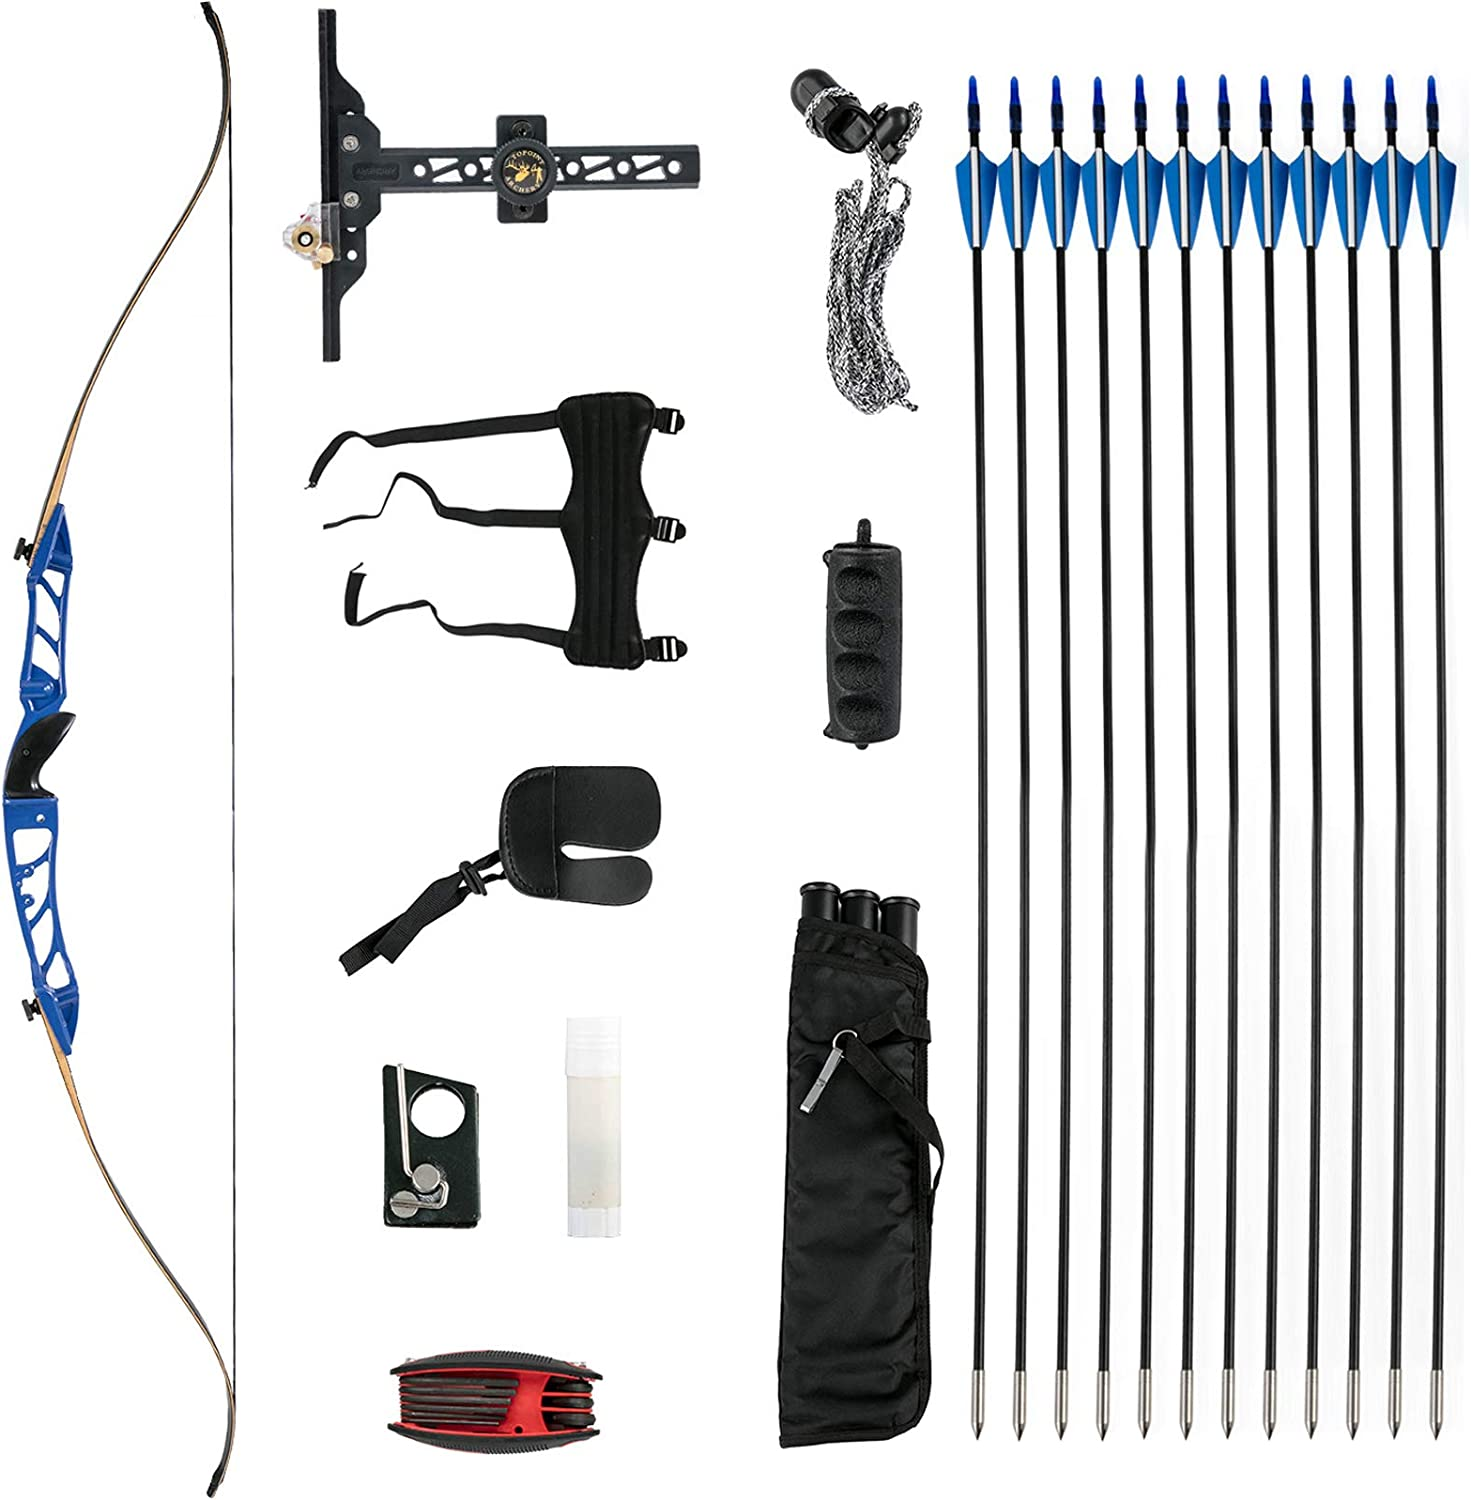 Sales for sale bkisy Credence Recurve Bow Set 20 28 Aluminum 36 32 38lbs Archery All